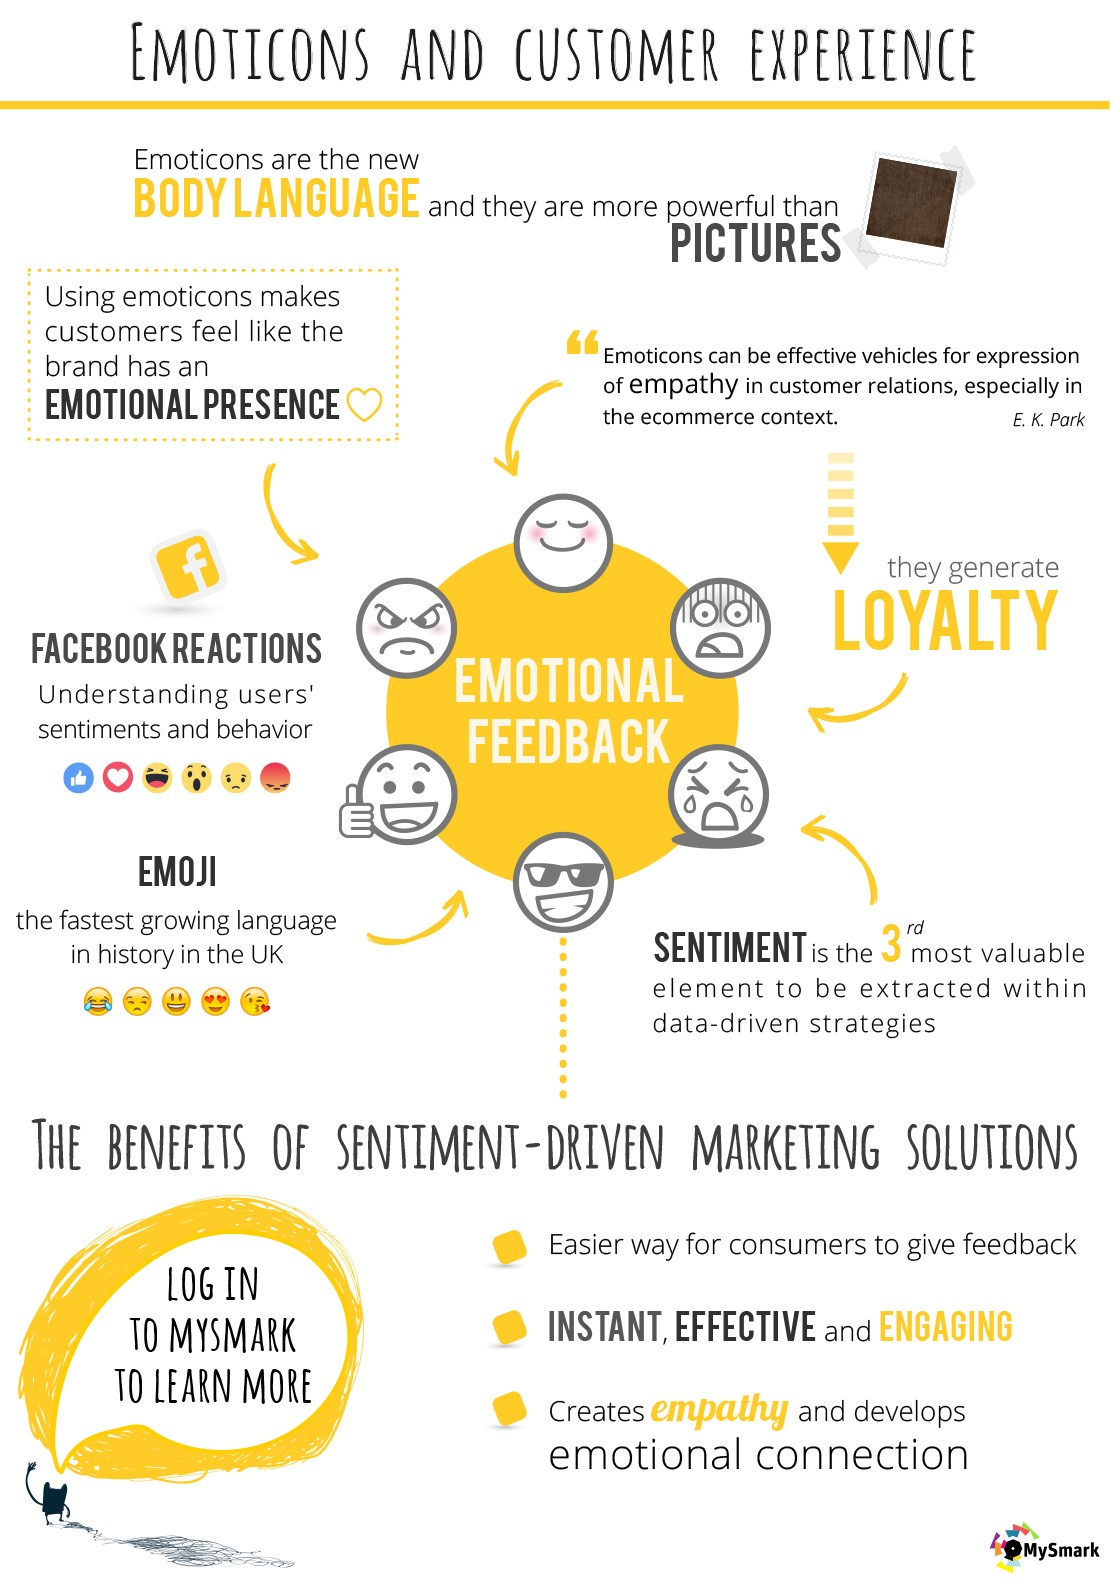 emoticons and customer experience: benefits of sentiment-driven marketing